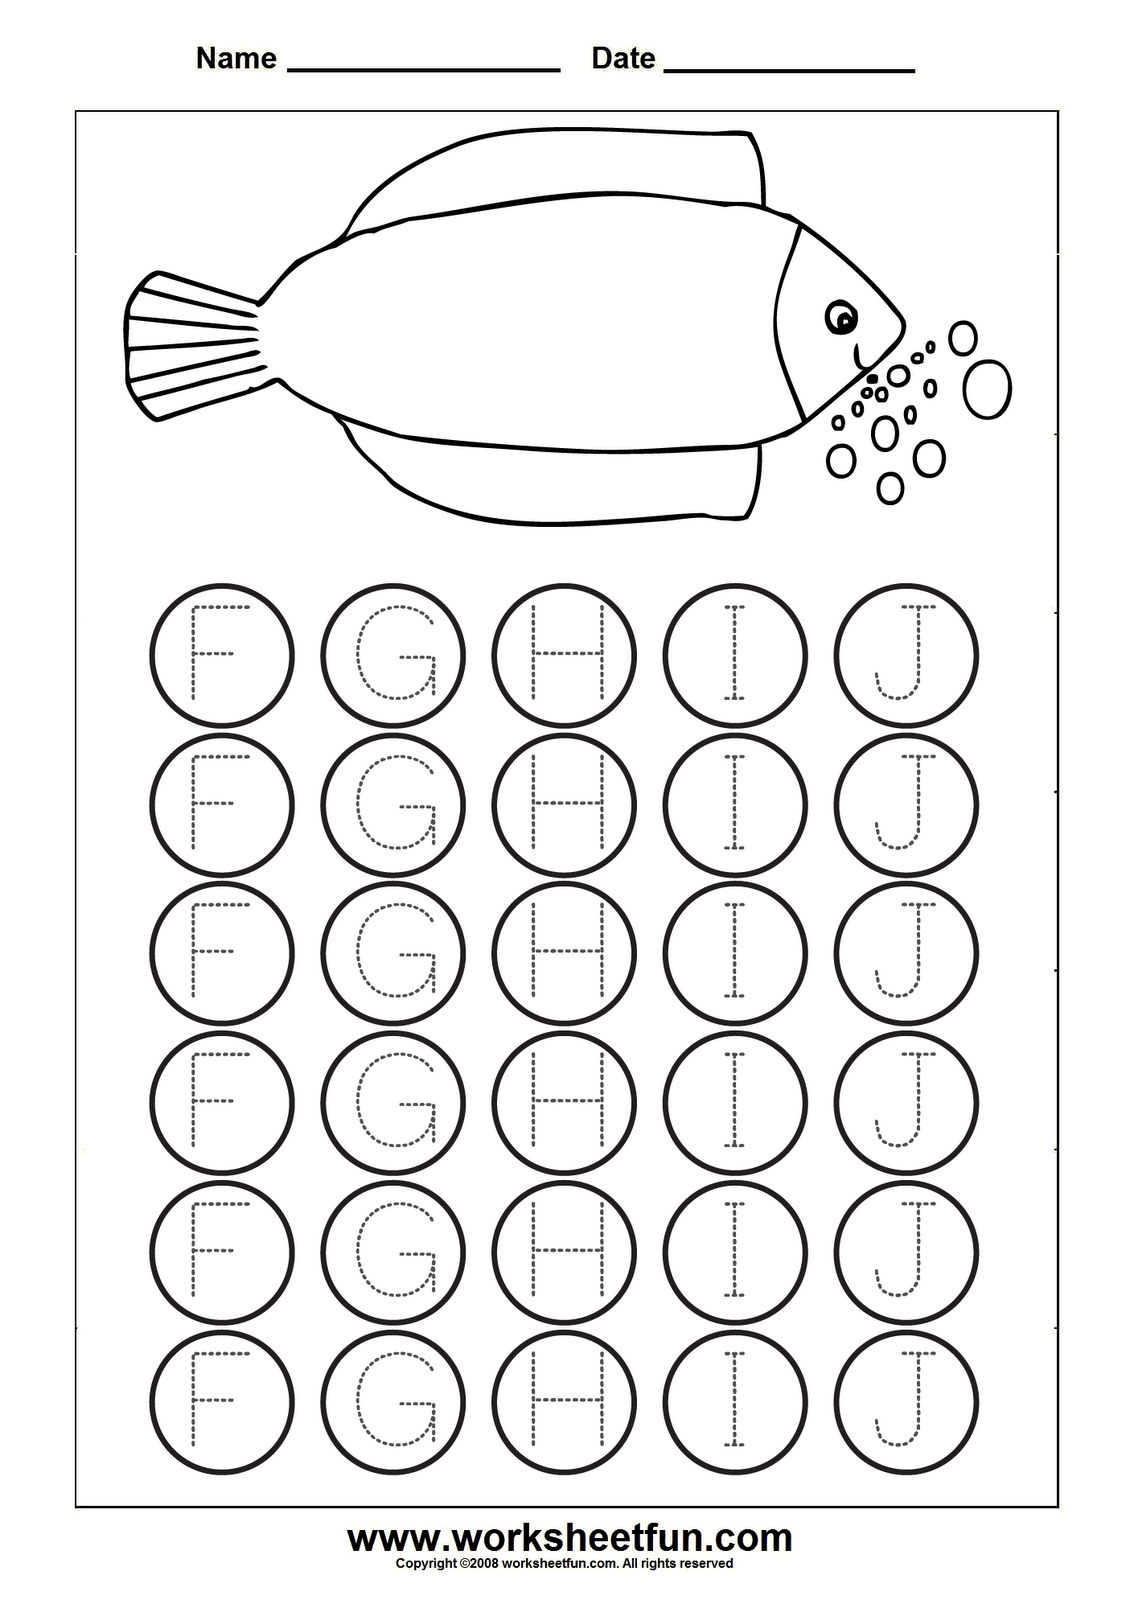 Image Detail For Letter Tracing Worksheets For Kindergarten